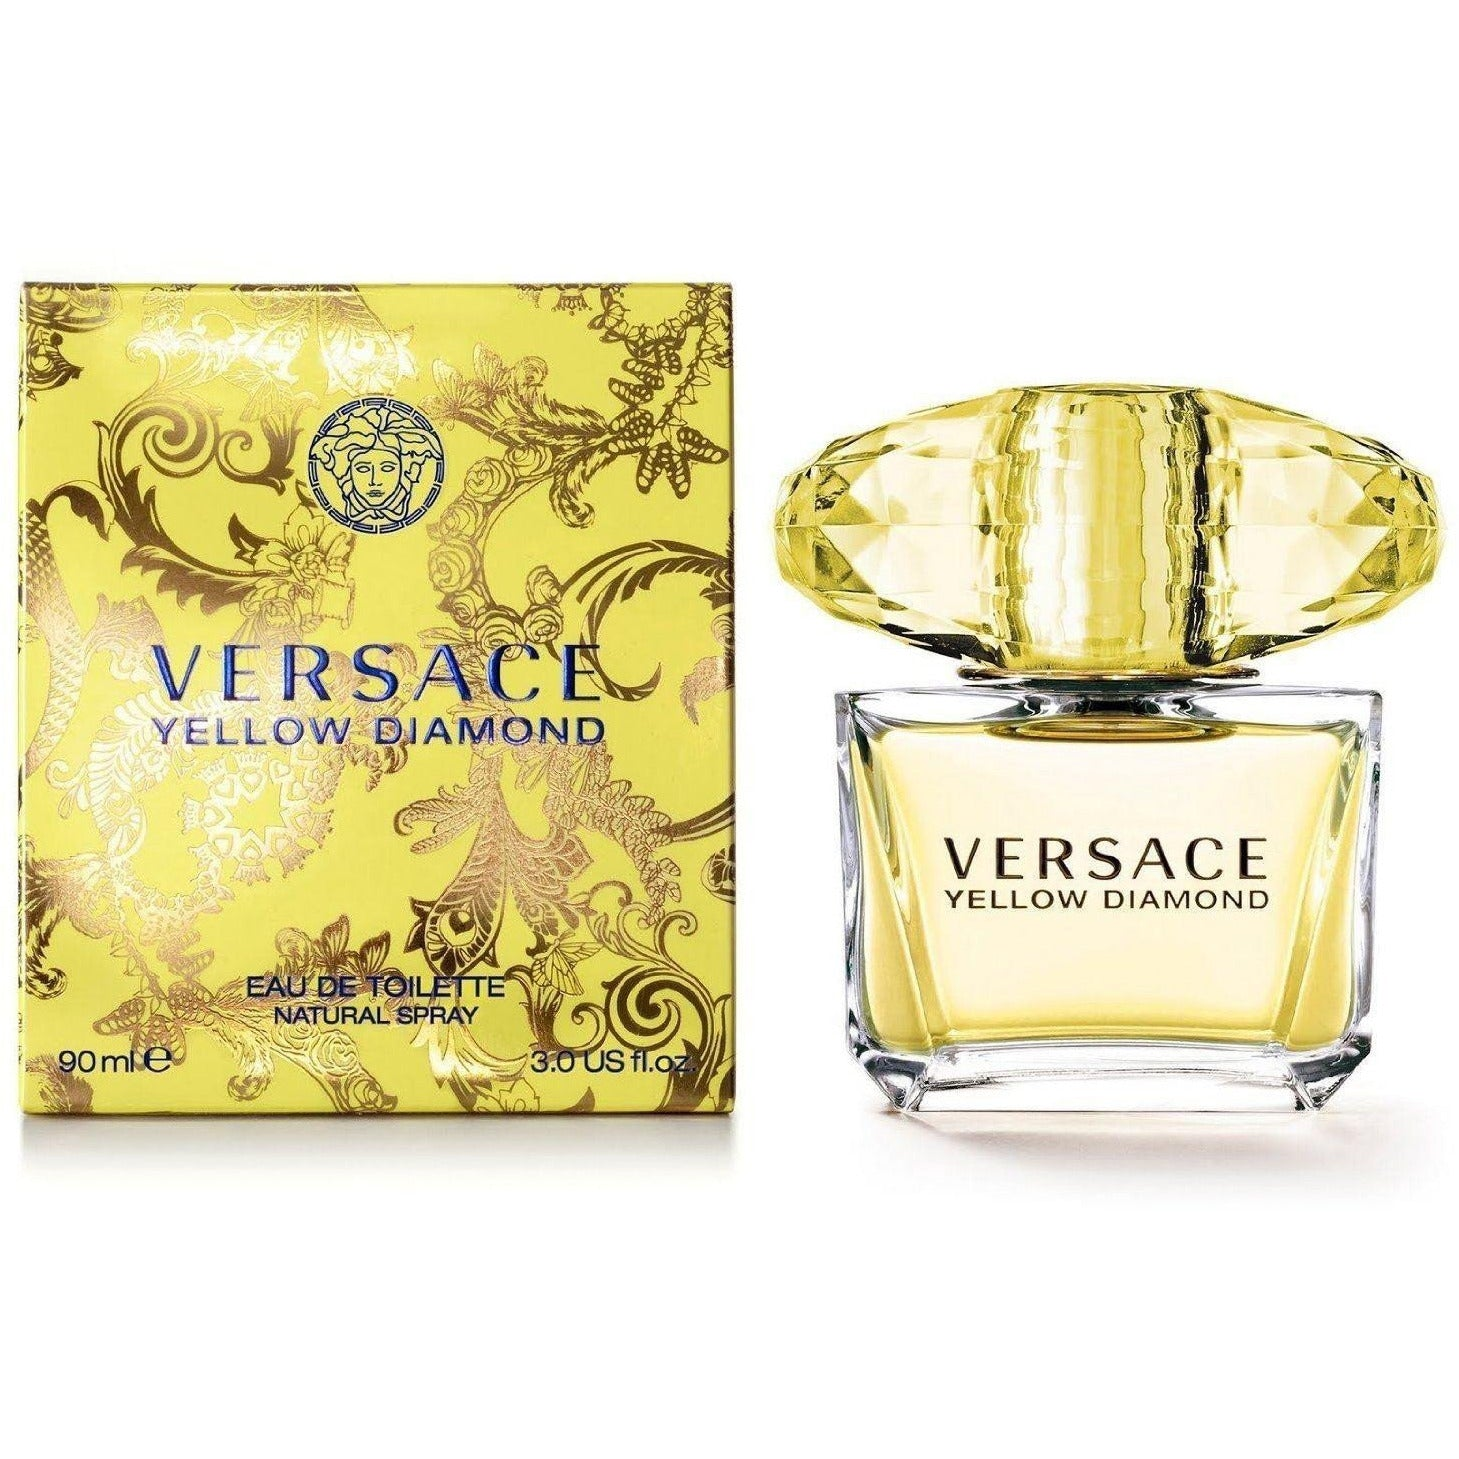 versace-yellow-diamond-perfume-3-0-oz-women-edt-new-in-box